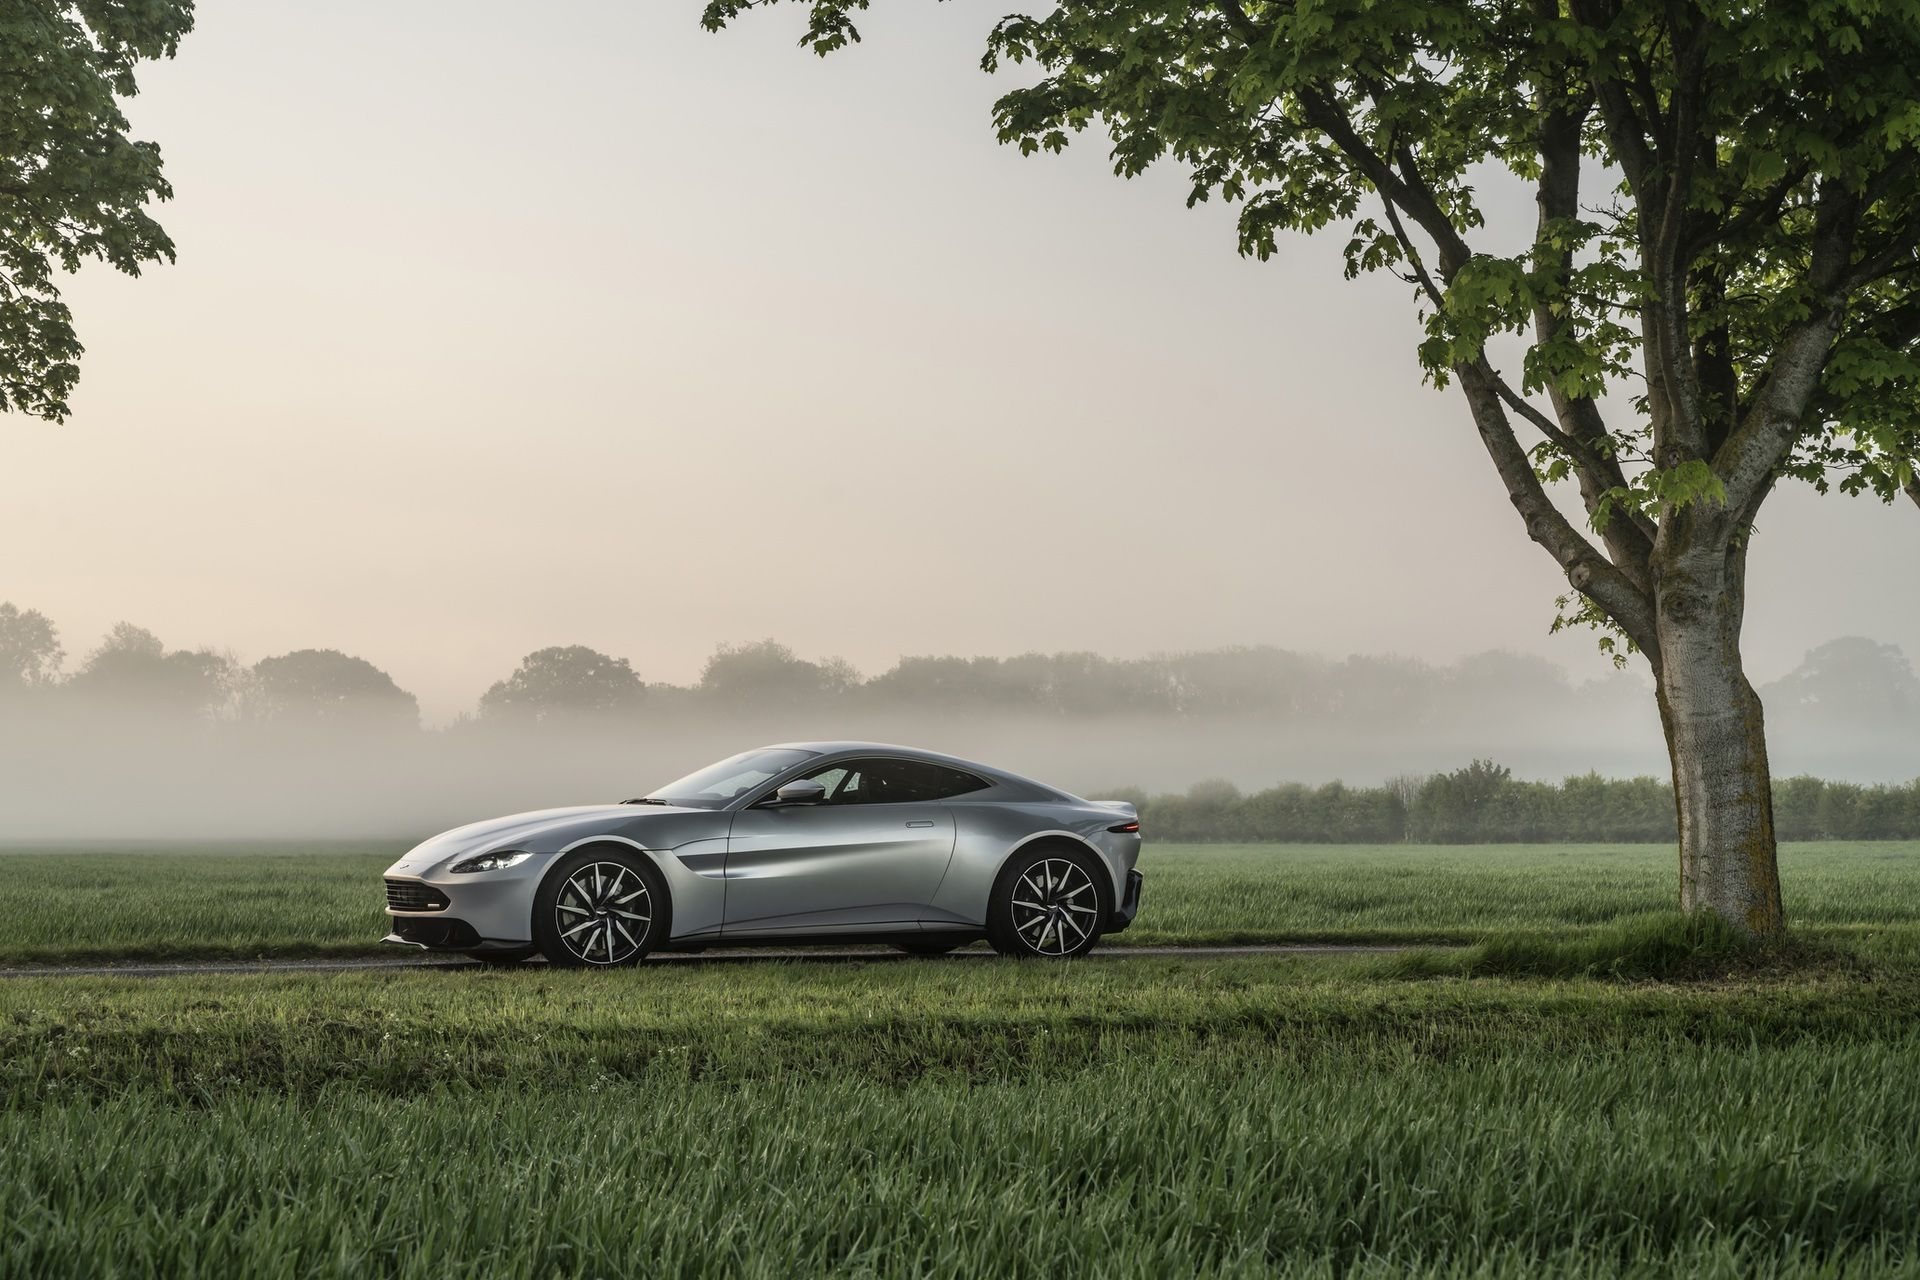 11.-Revenant-Automotive-Aston-Martin-Vantage-bumper-side-profile